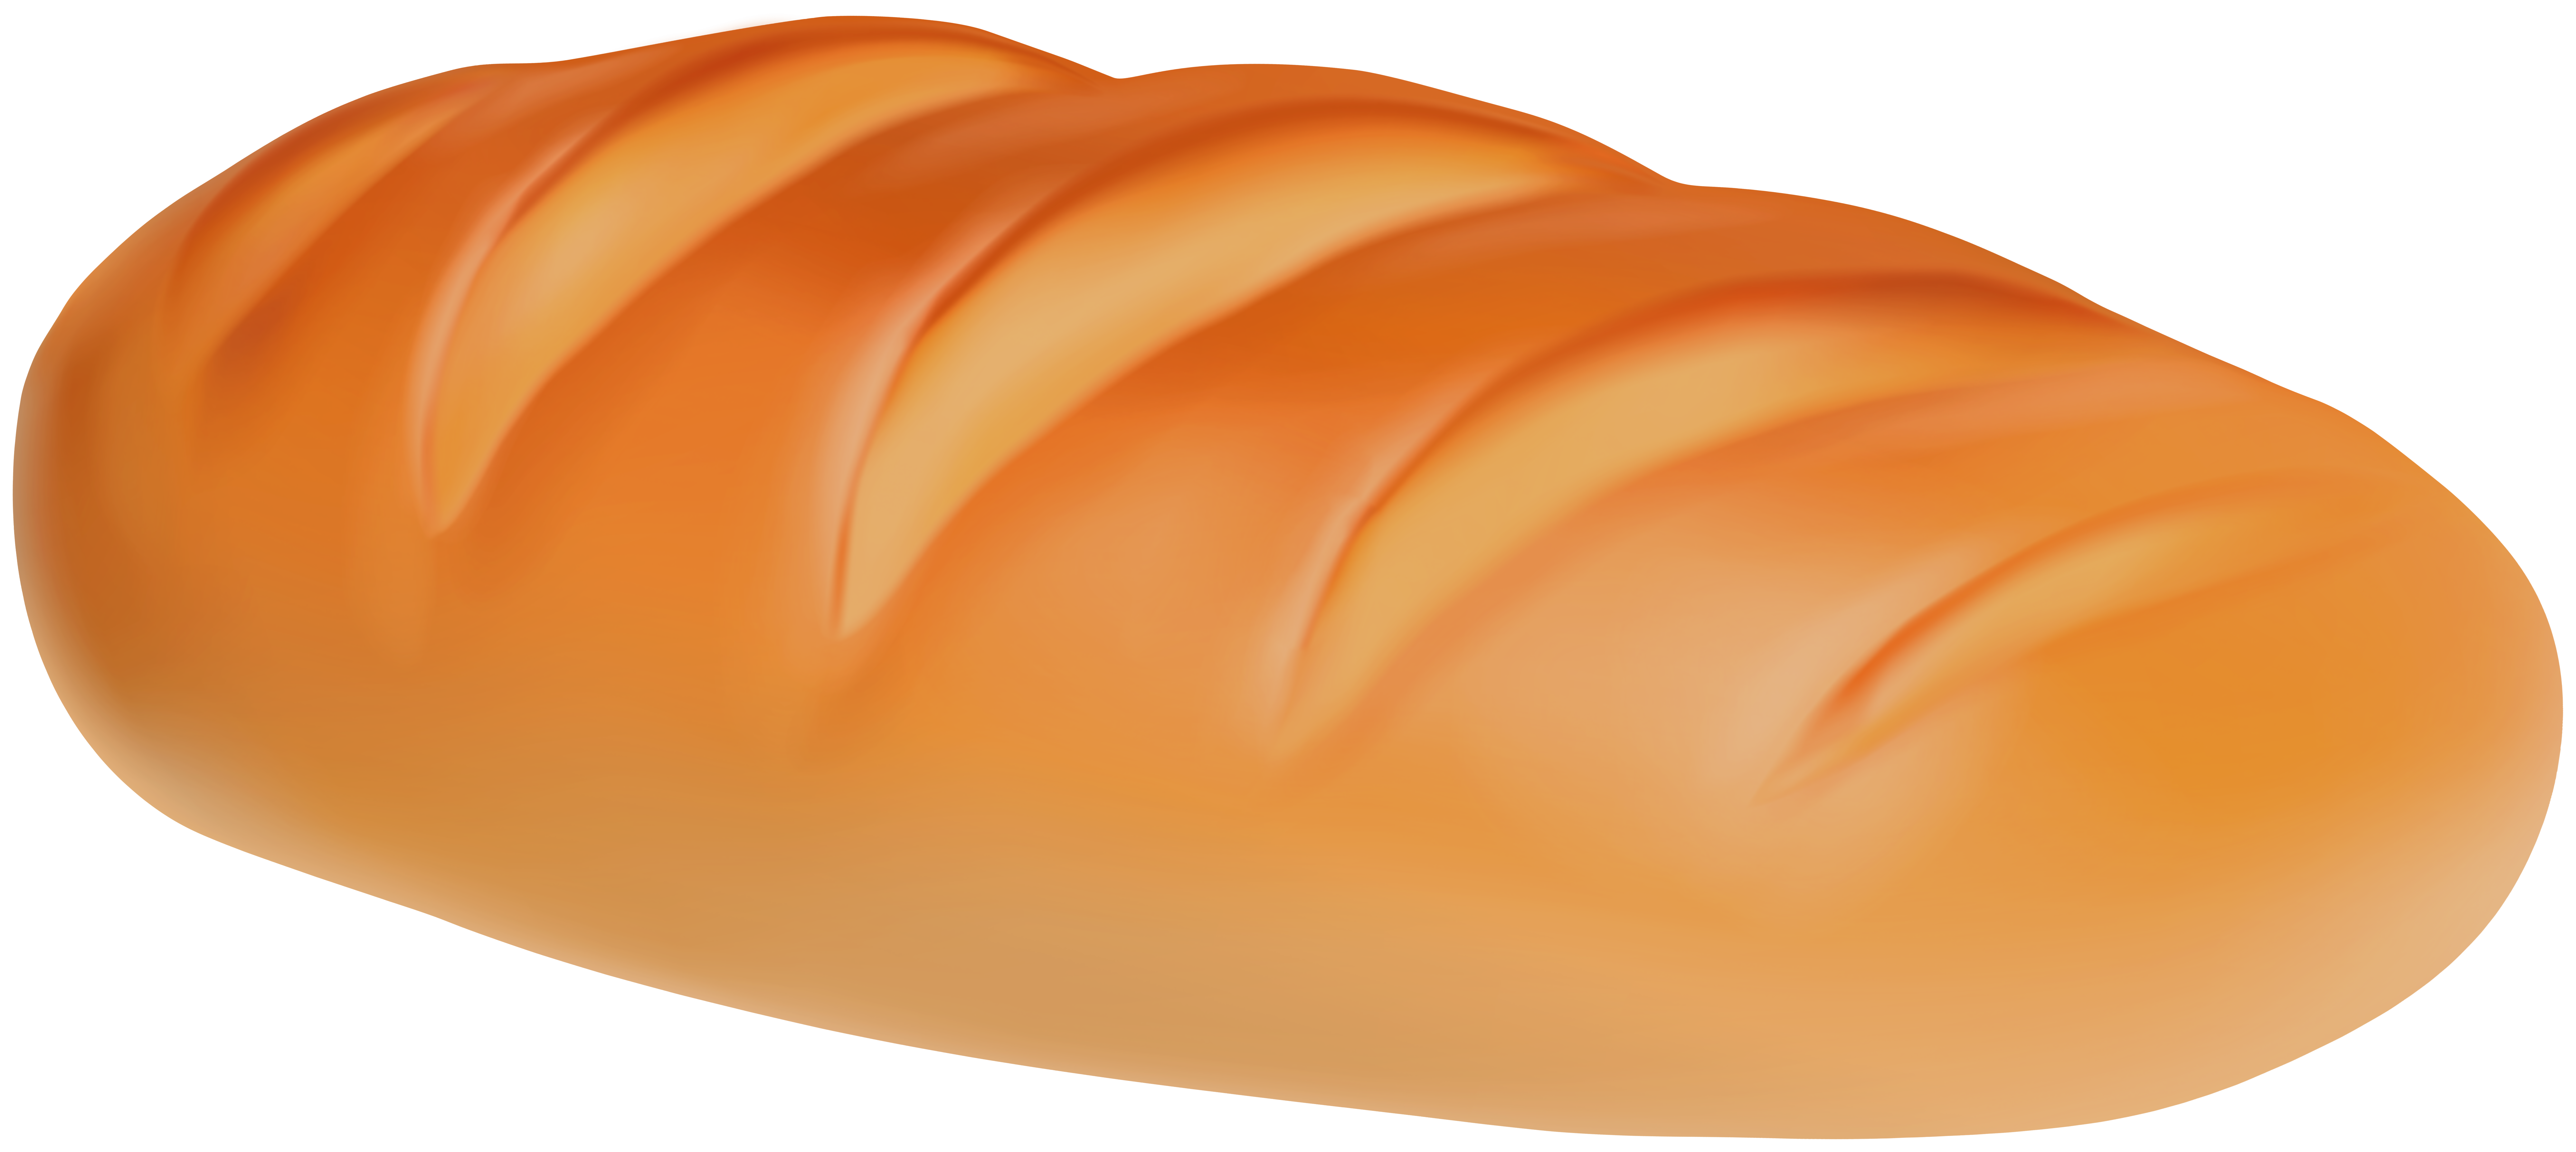 library Bread clipart. Png clip art best.